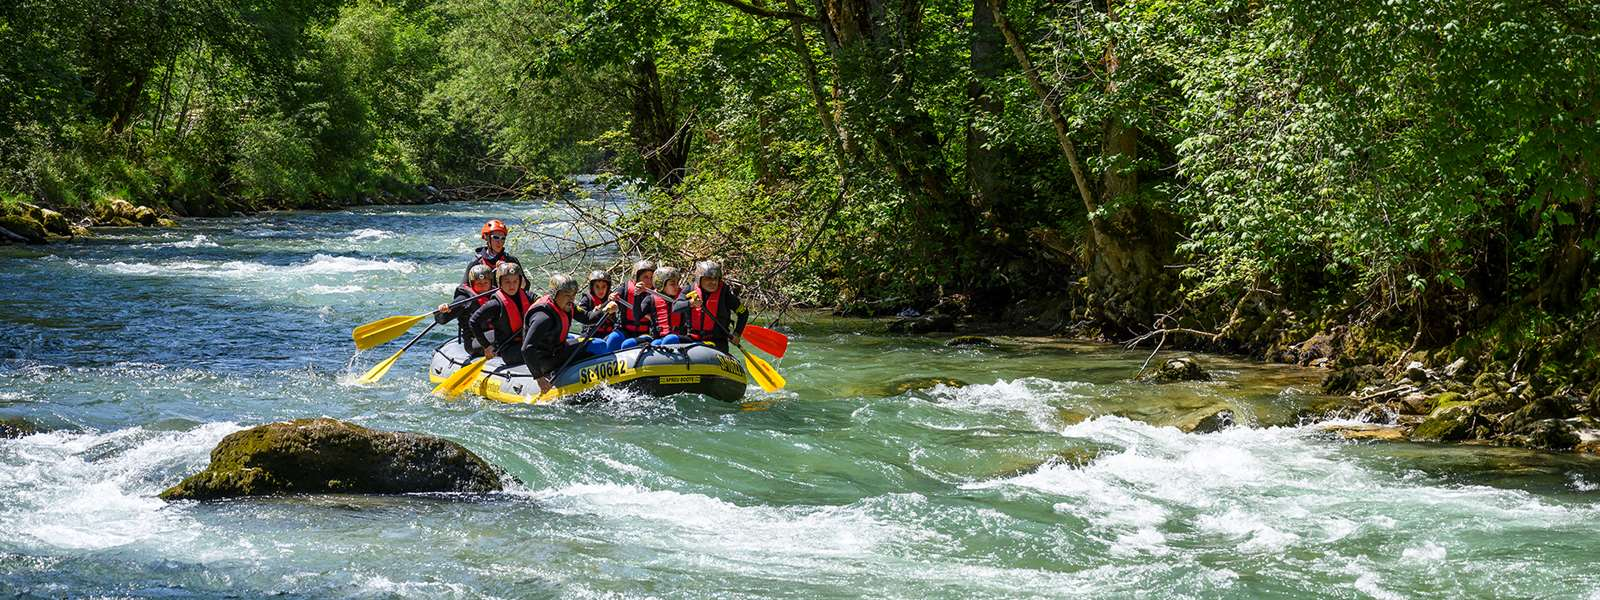 Rafting i Schladming